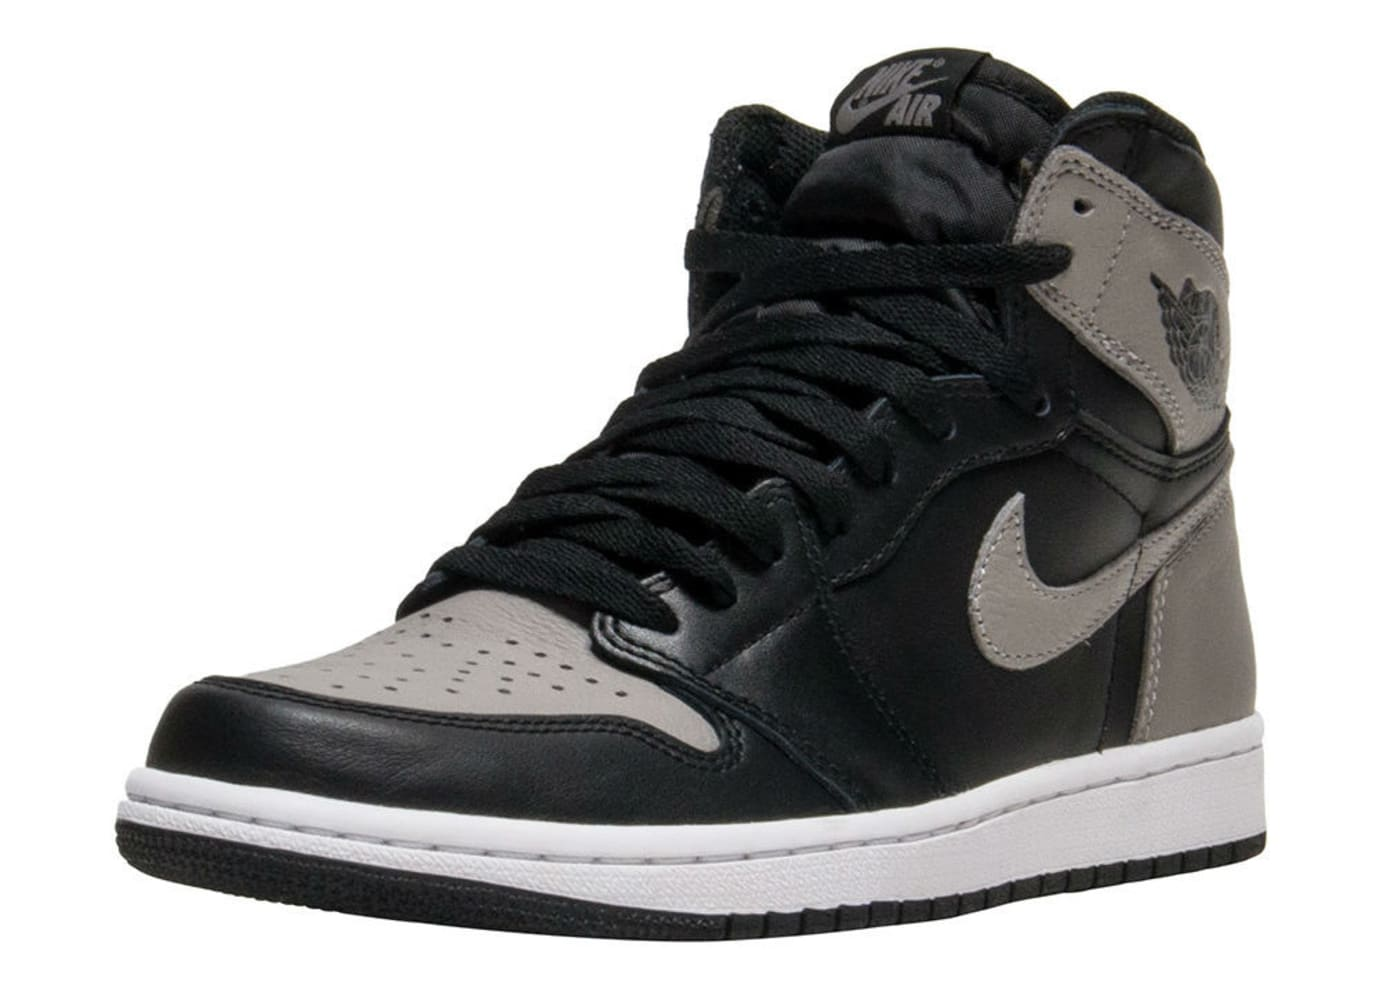 Air Jordan 1 I Shadow Grey 2018 Release Date 555088-013 Front